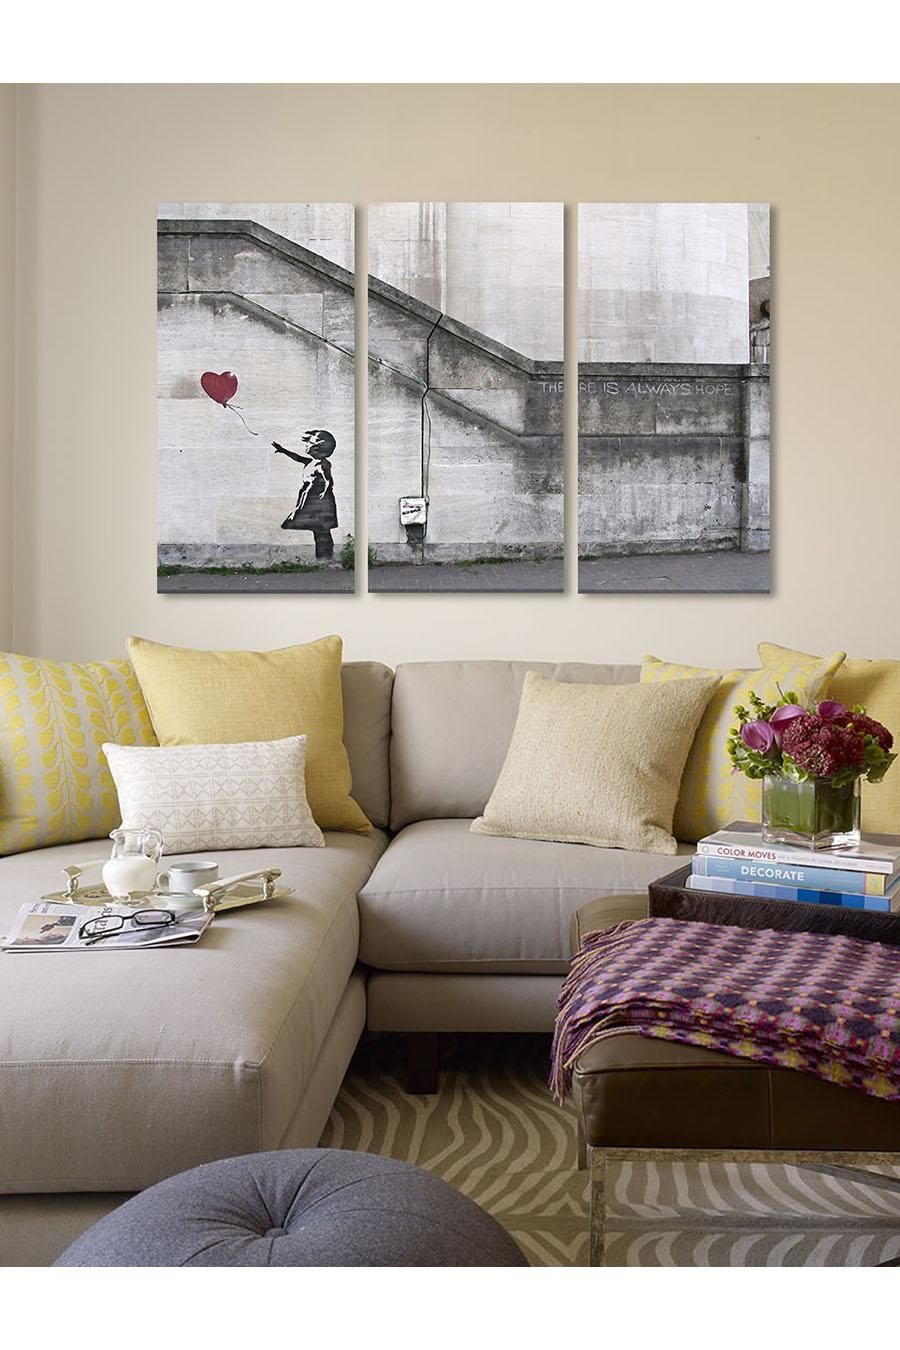 3 Home Decor Trends For Spring Brittany Stager: Banksy There Is Always Hope Balloon Girl 60inX40in 3-Piece